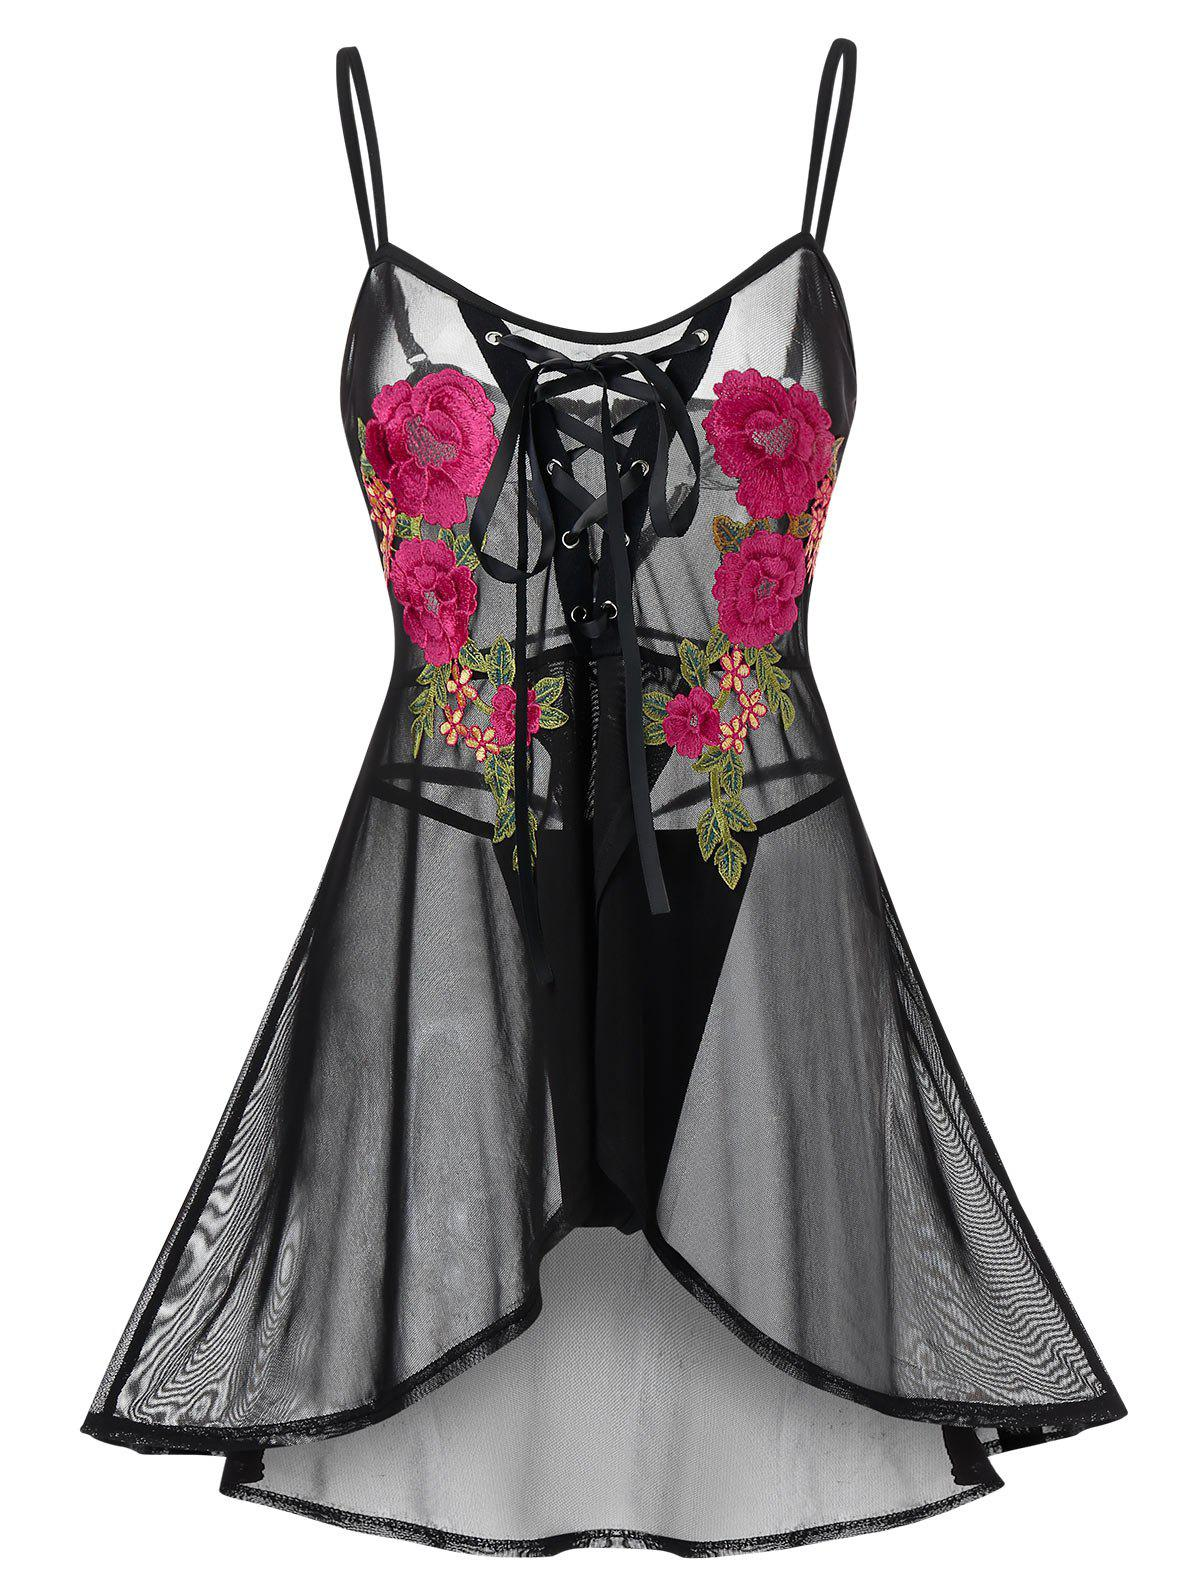 New Plus Size Flower Embroidered Lace Up Lingerie Babydoll